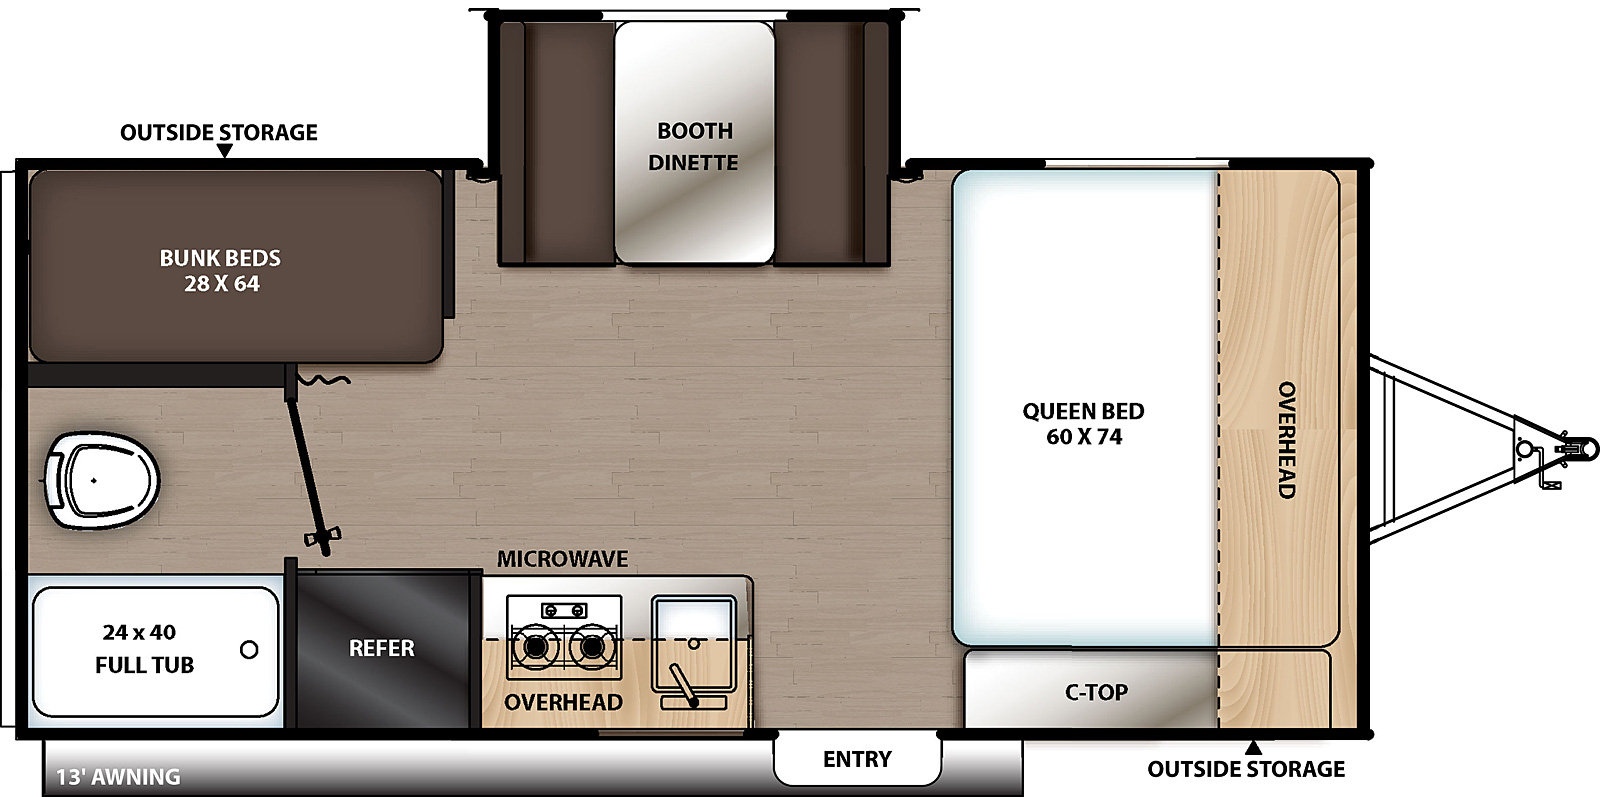 Floorplan for Catalina Summit Series 7 Travel Trailer model 174BHS